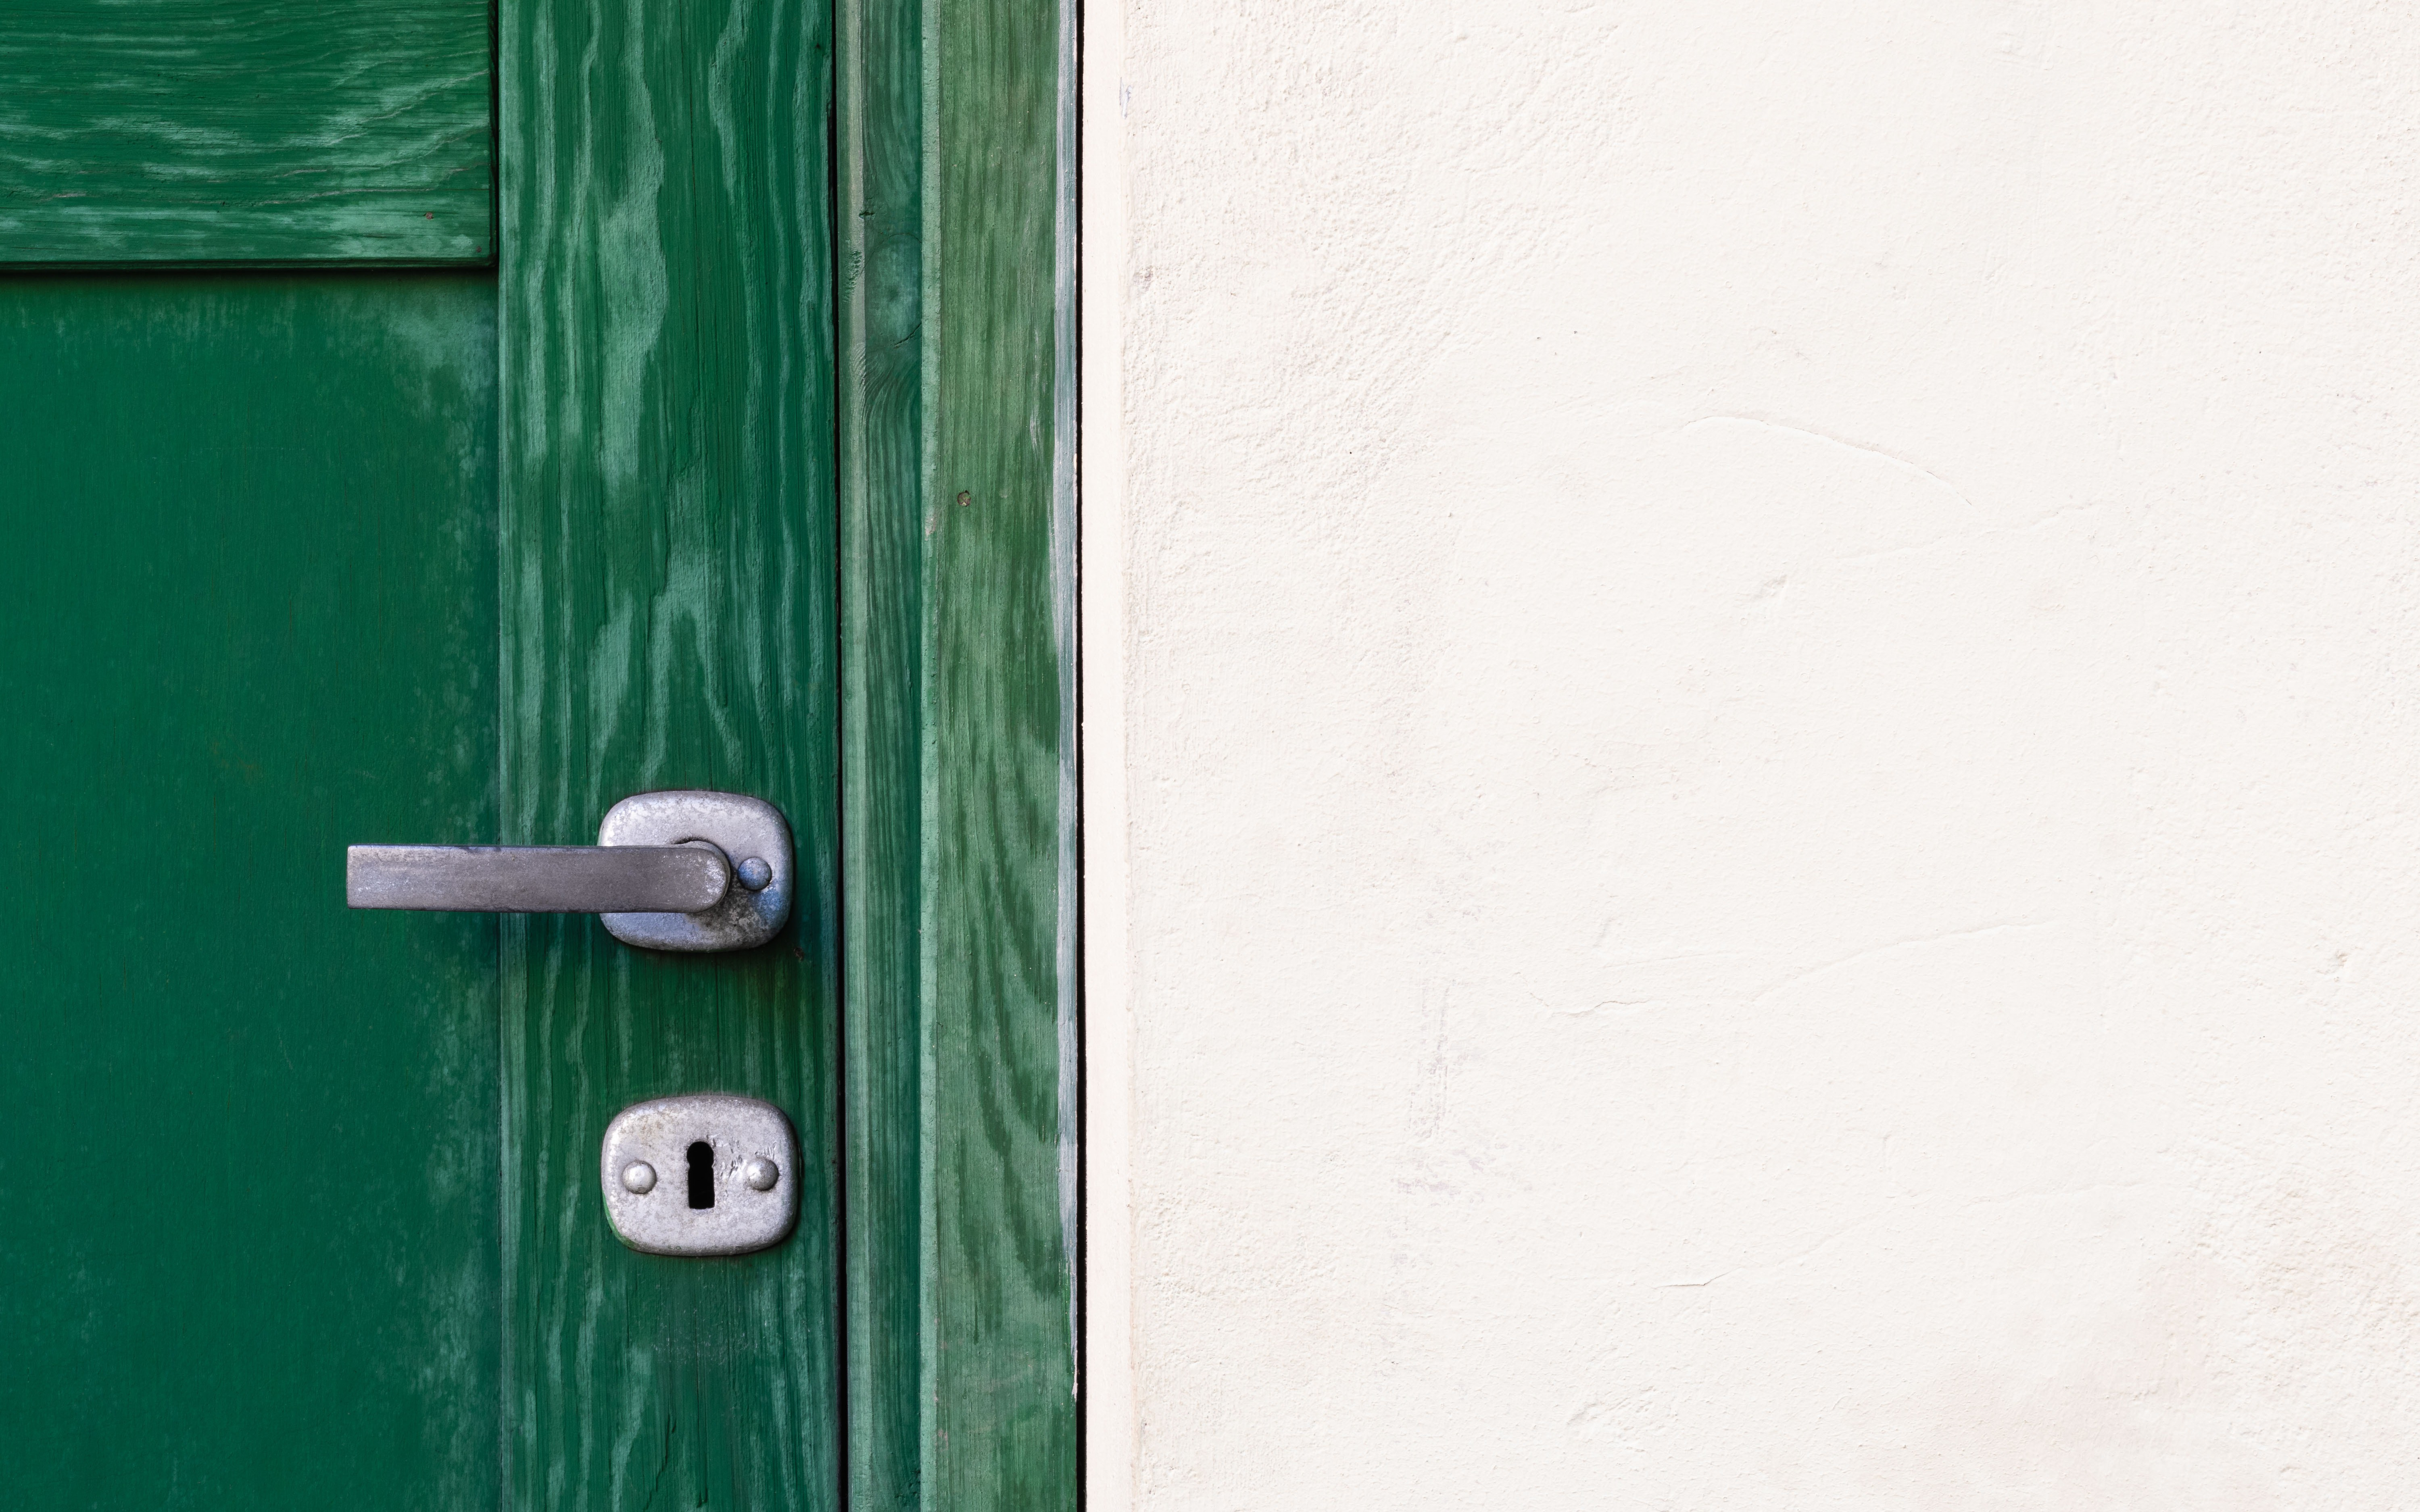 Widely Used JavaScript Library Had a Backdoor to Steal Bitcoin